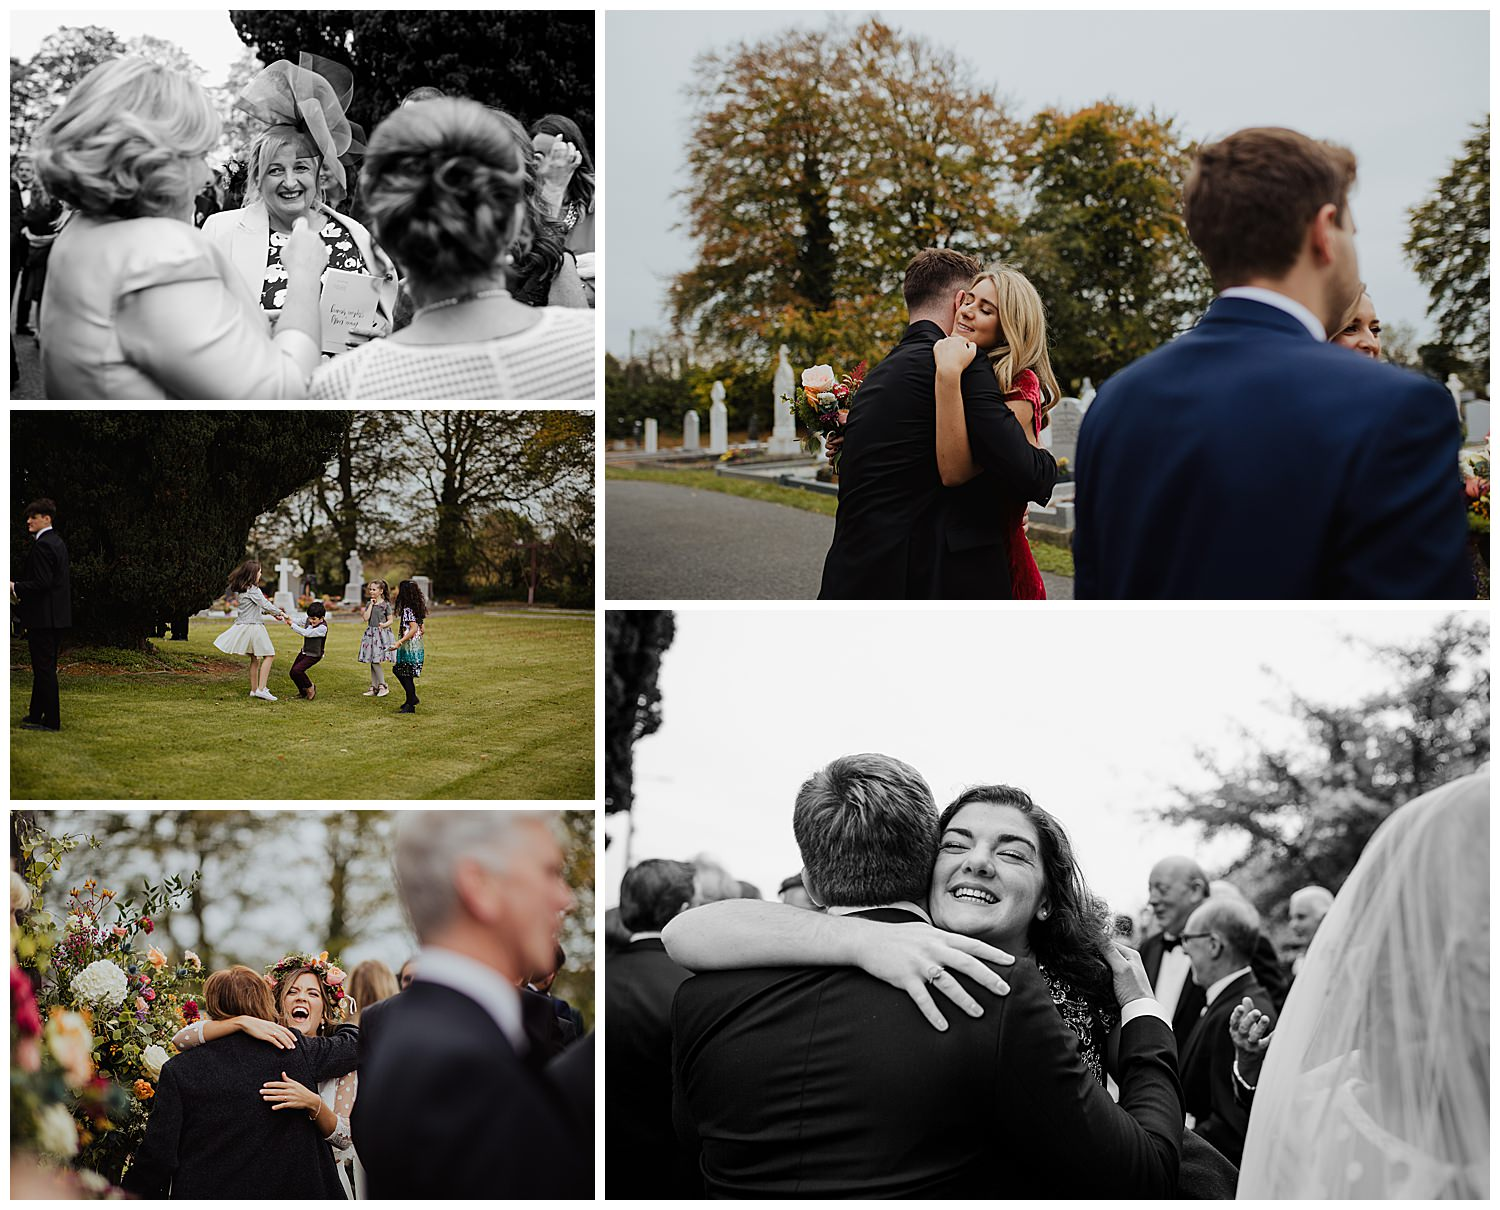 a+s_ballymagarvey_village_wedding_photographer_livia_figueiredo_30.jpg